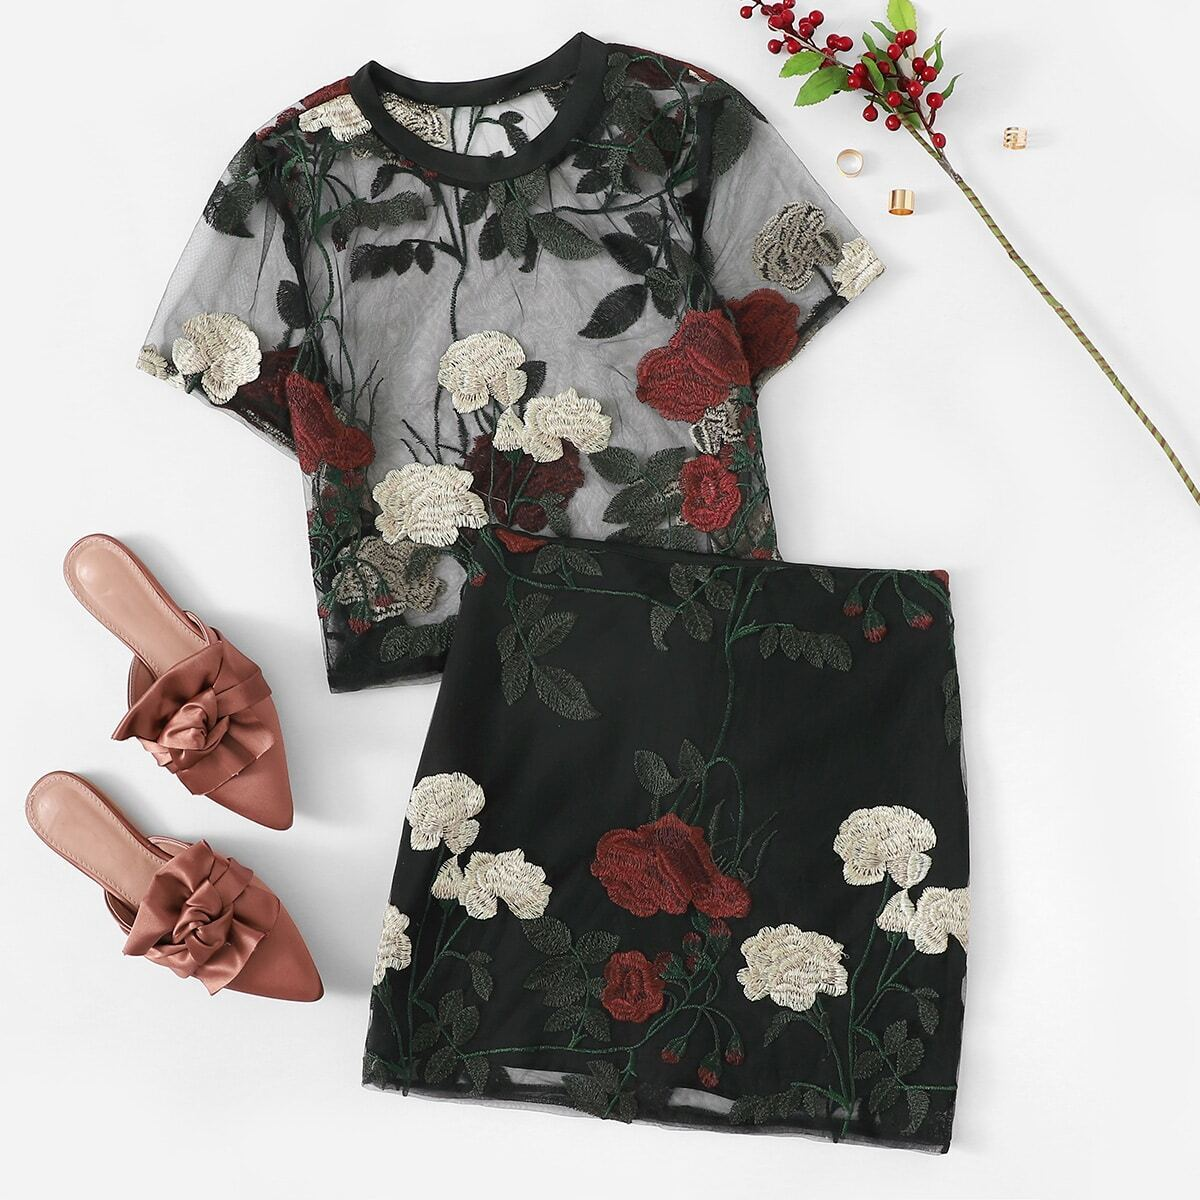 Floral Embroidered Sheer Mesh Top With Skirt